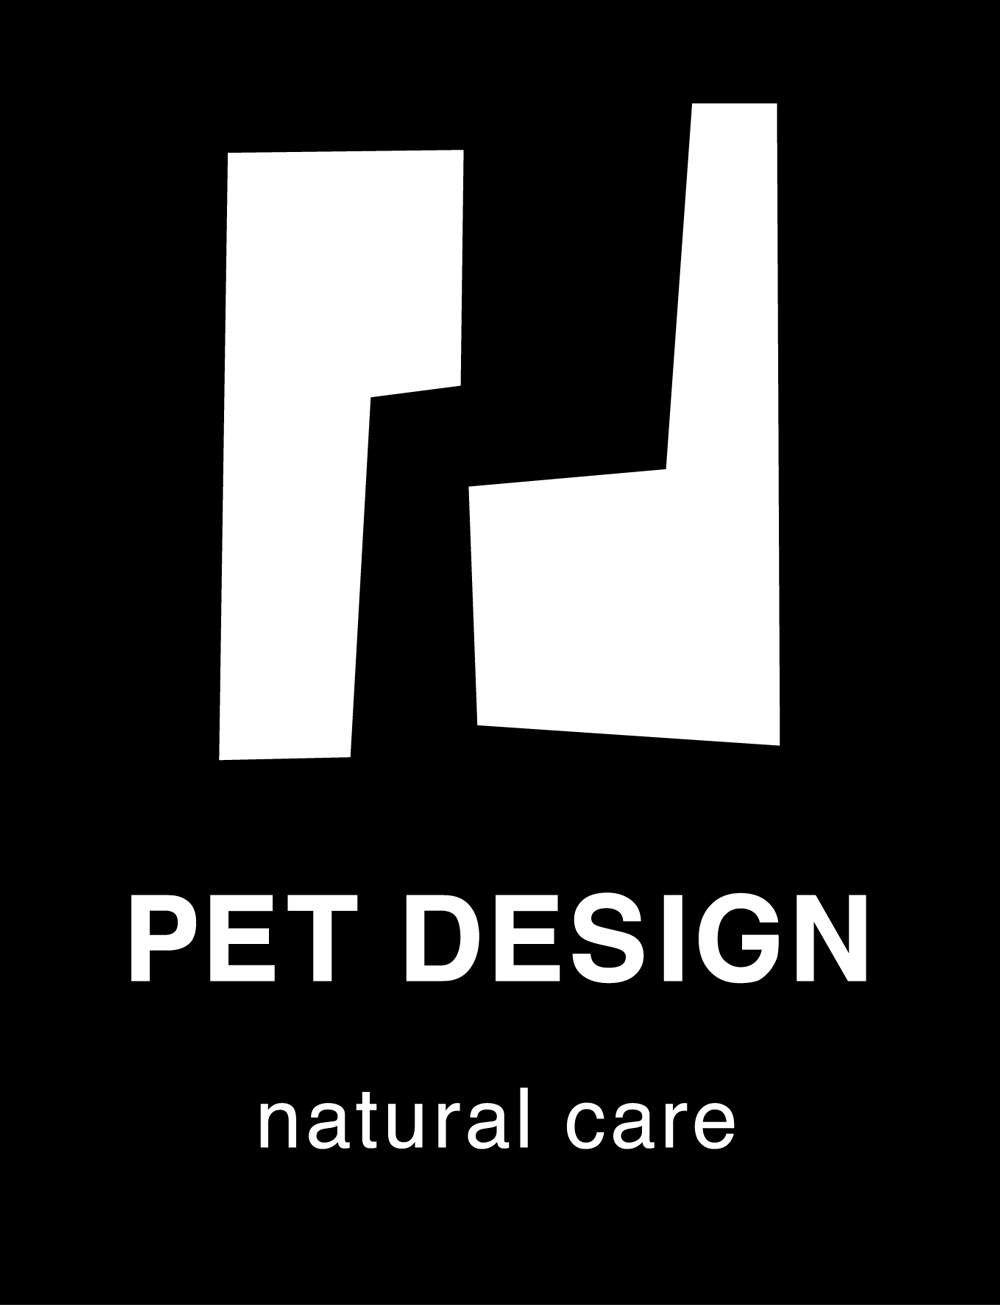 PET DESIGN natural care